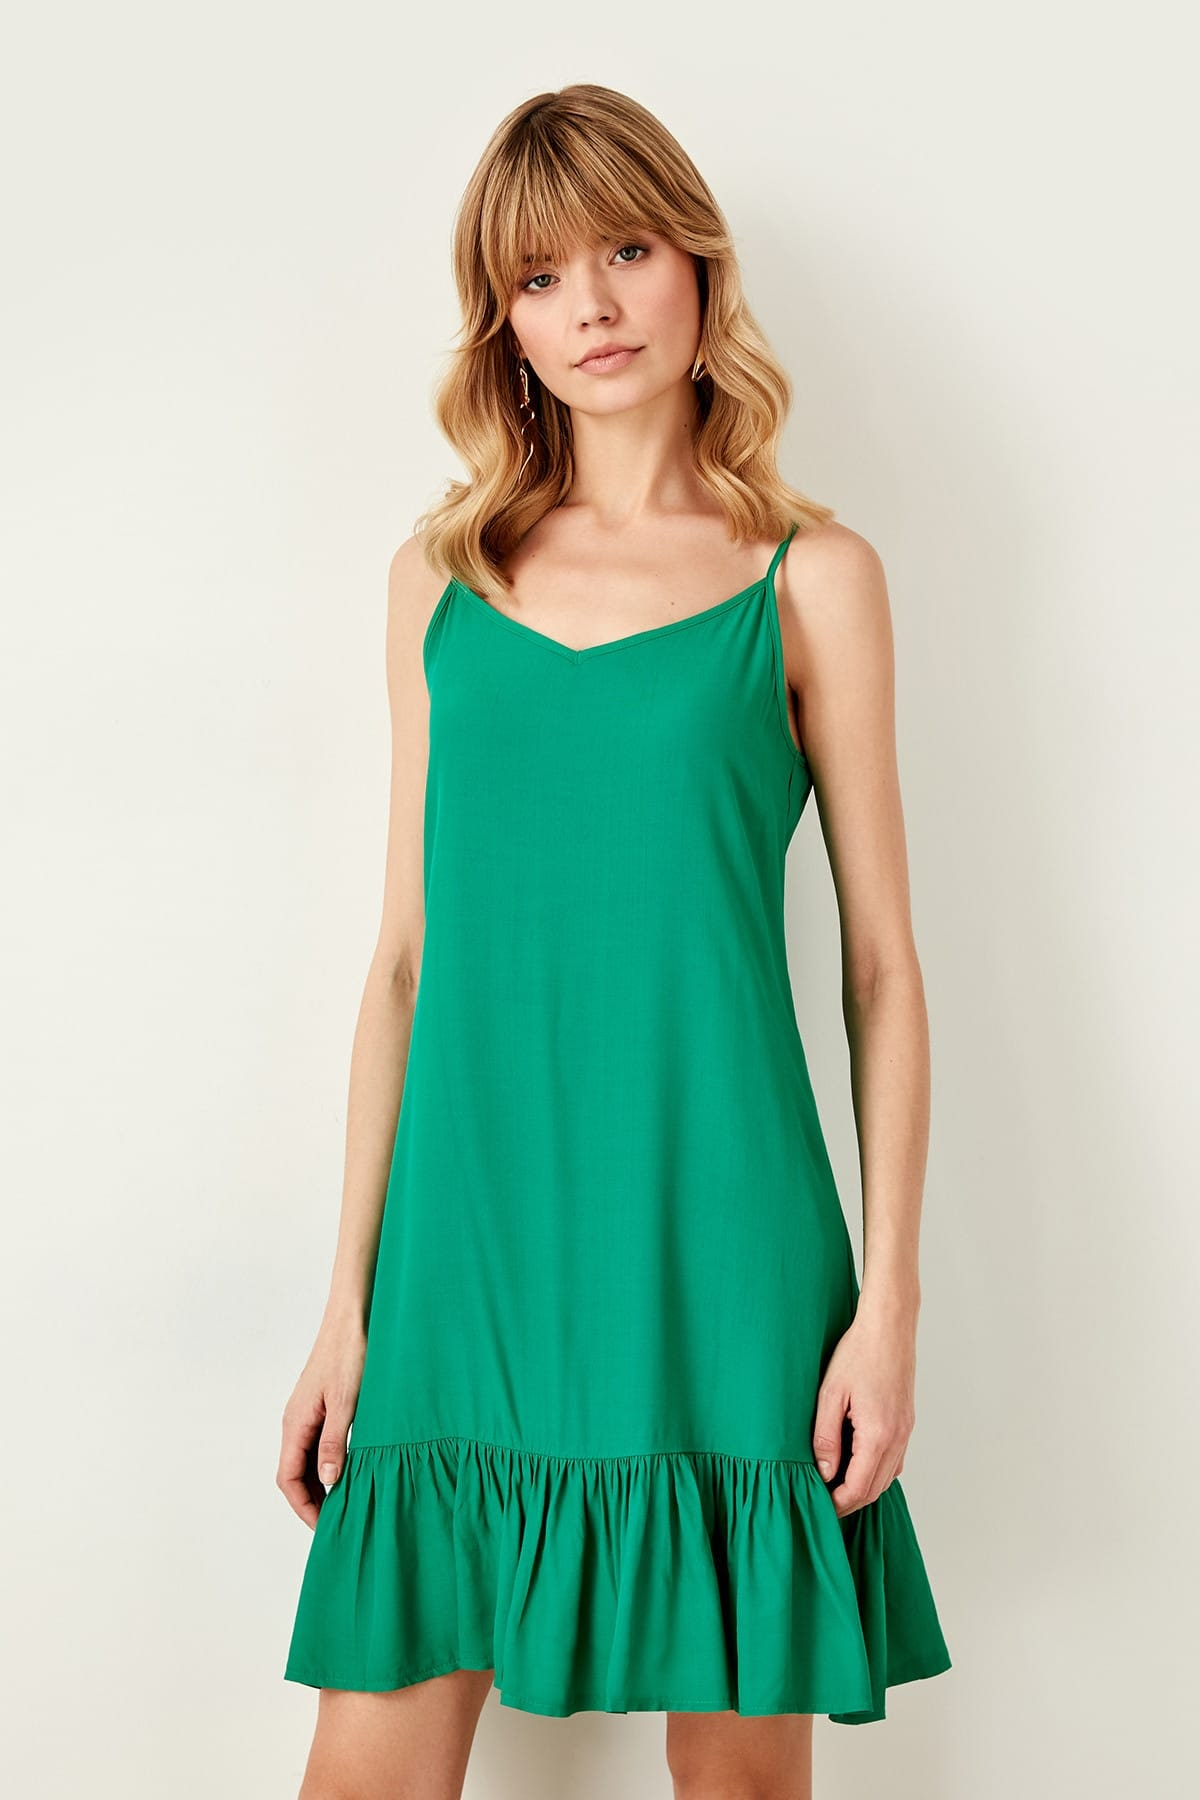 Trendyol Green Hand-Wheel Dress